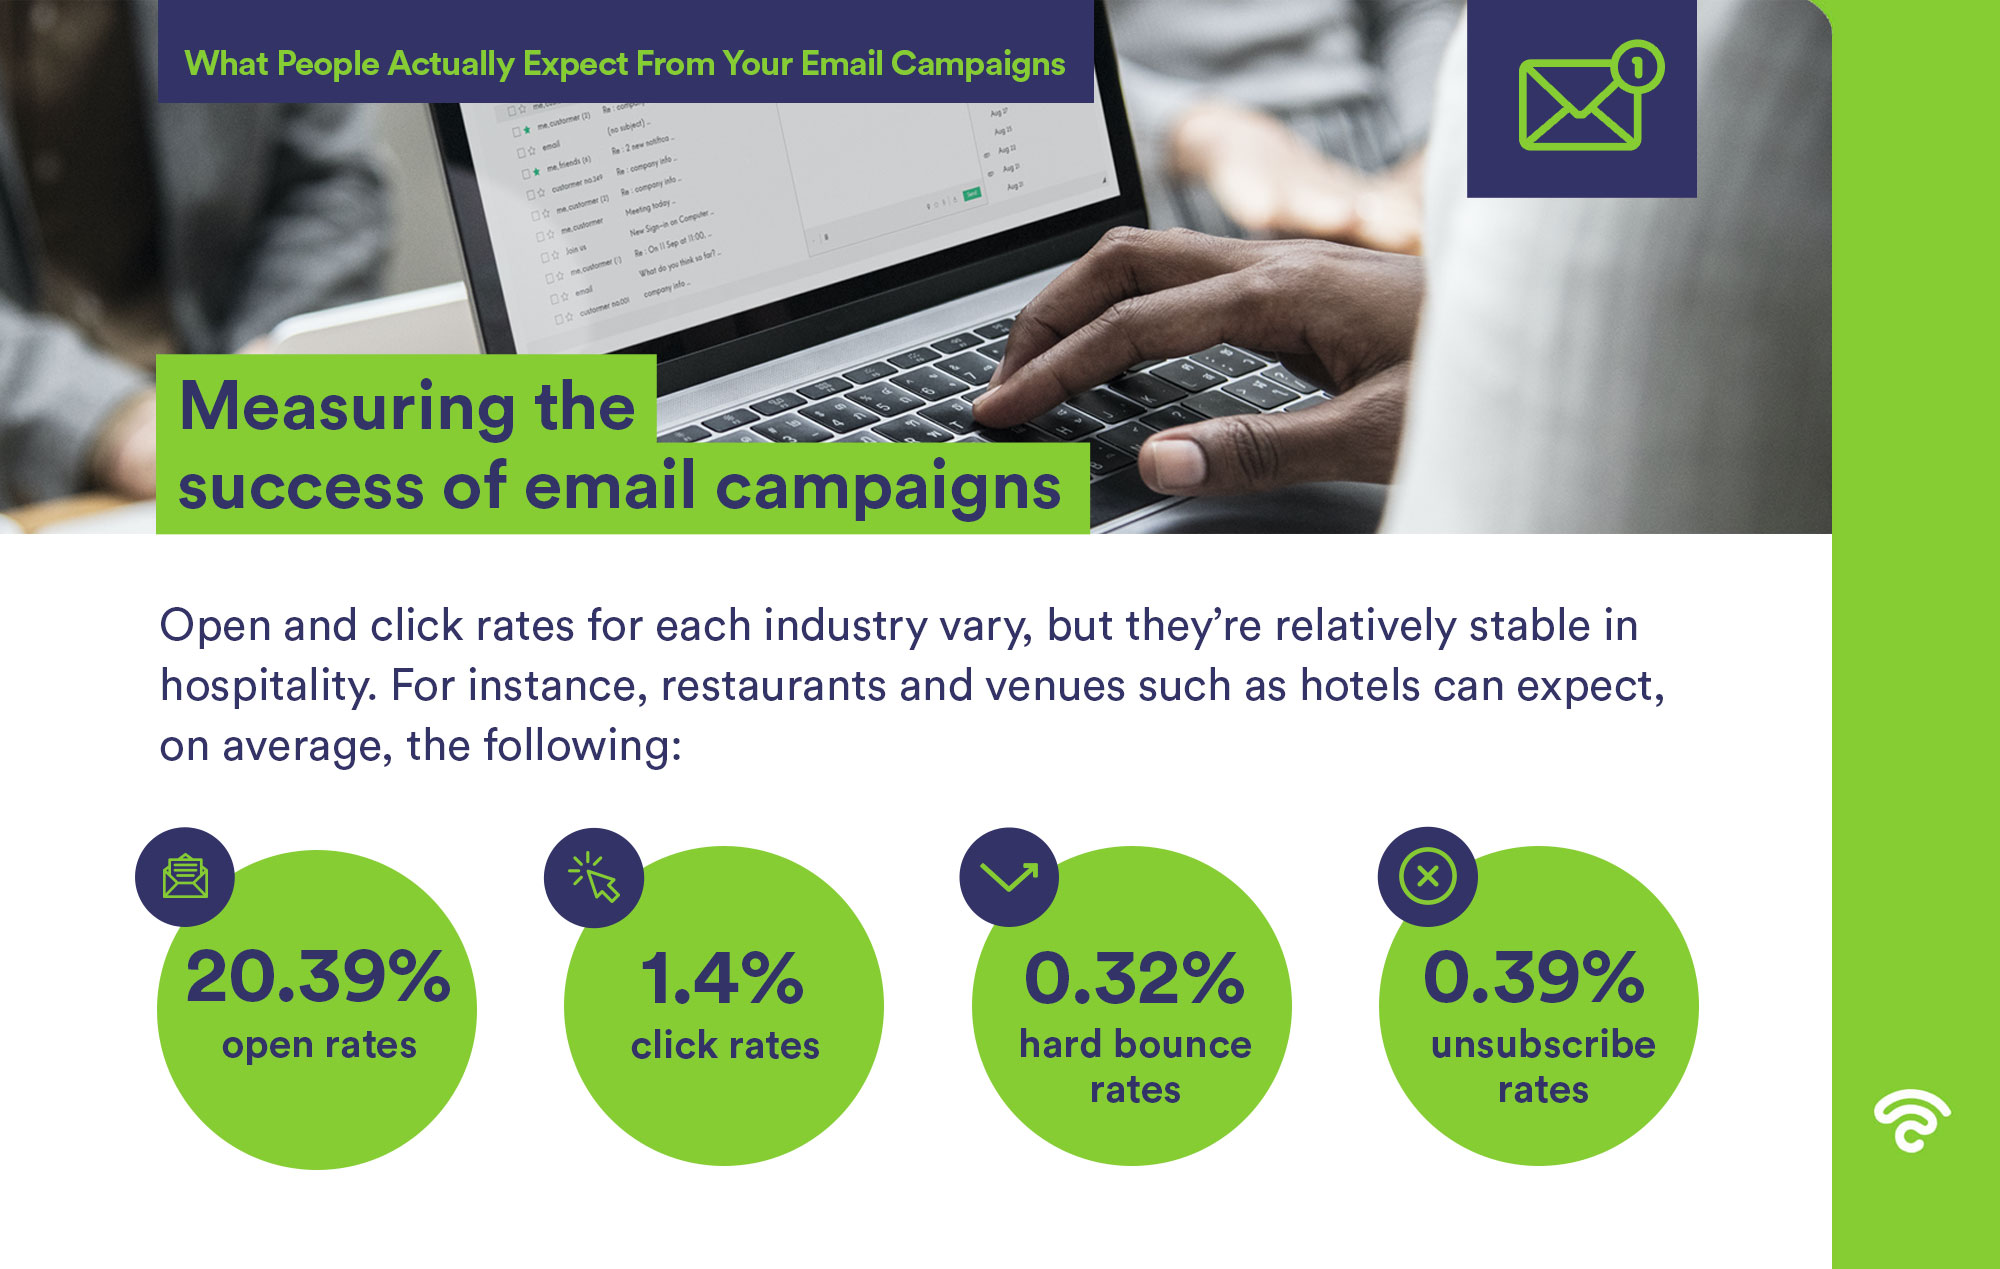 Measuring the success of email campaigns